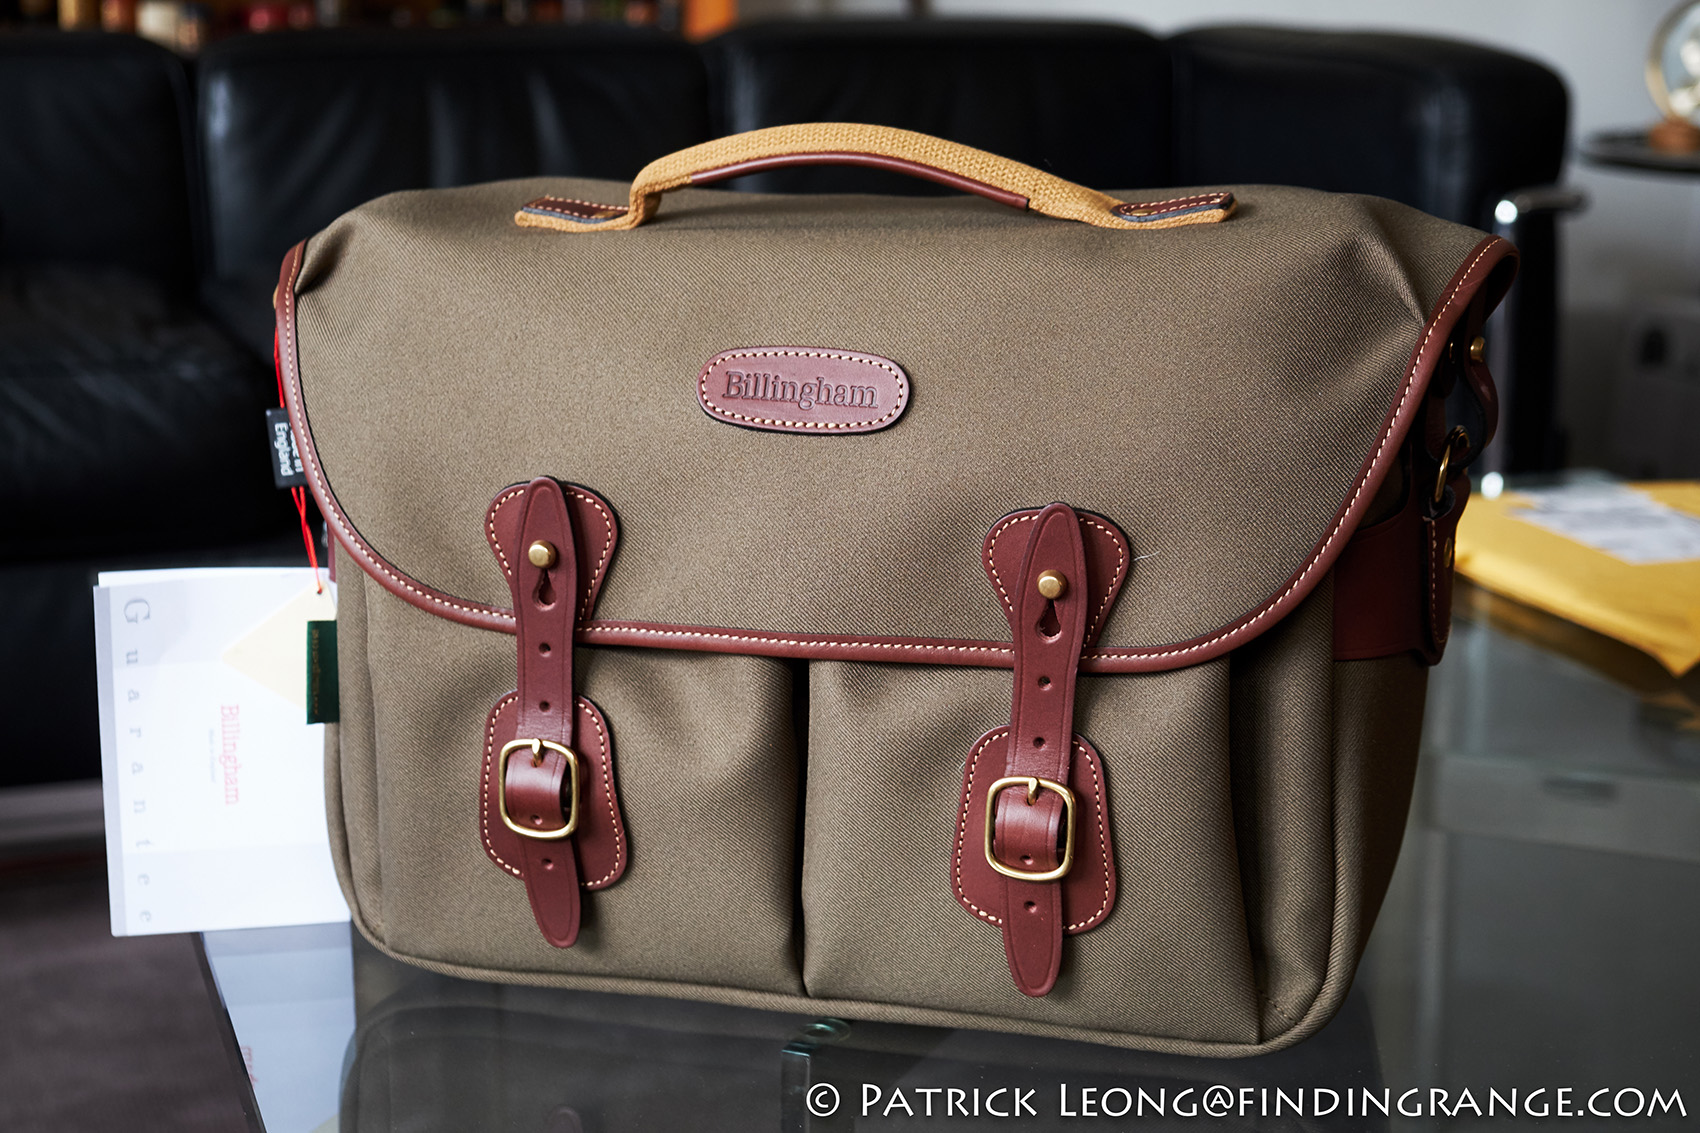 Billingham-Hadley-One-First-Impressions-Review-1